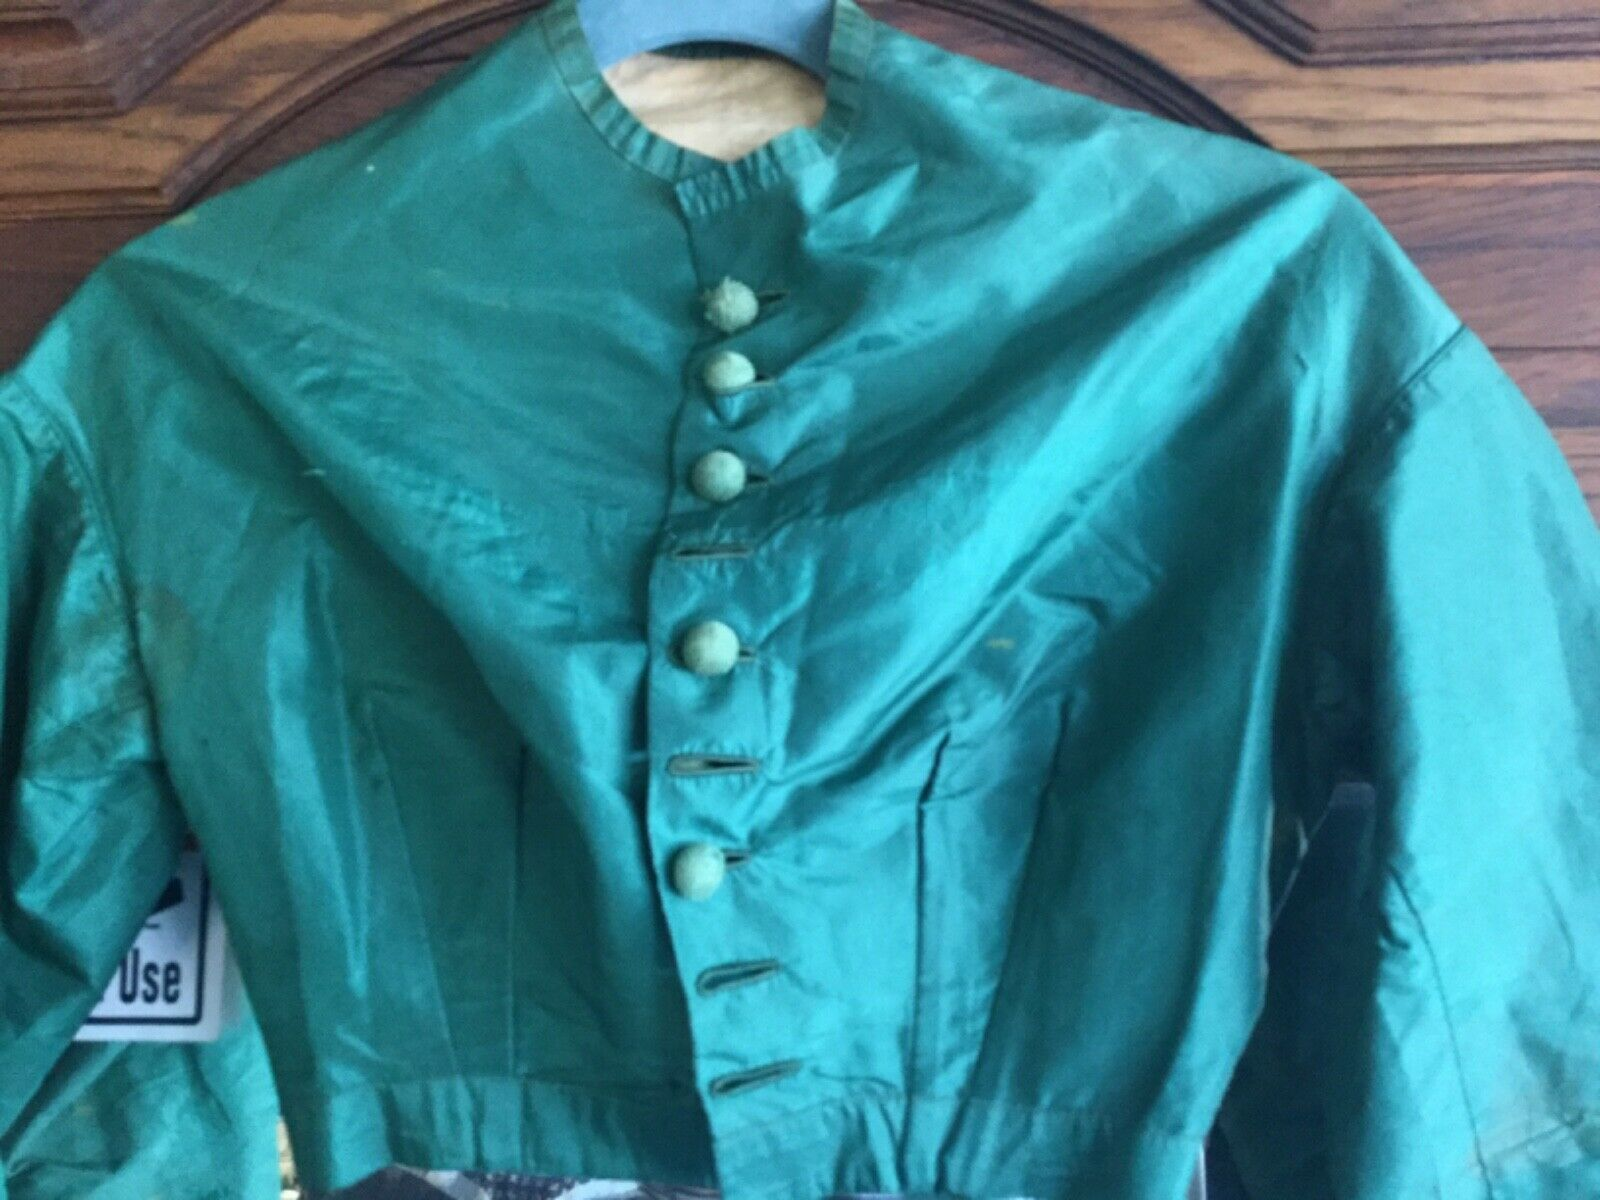 Antique Victorian1860s Green Bodice Blouse  - image 3